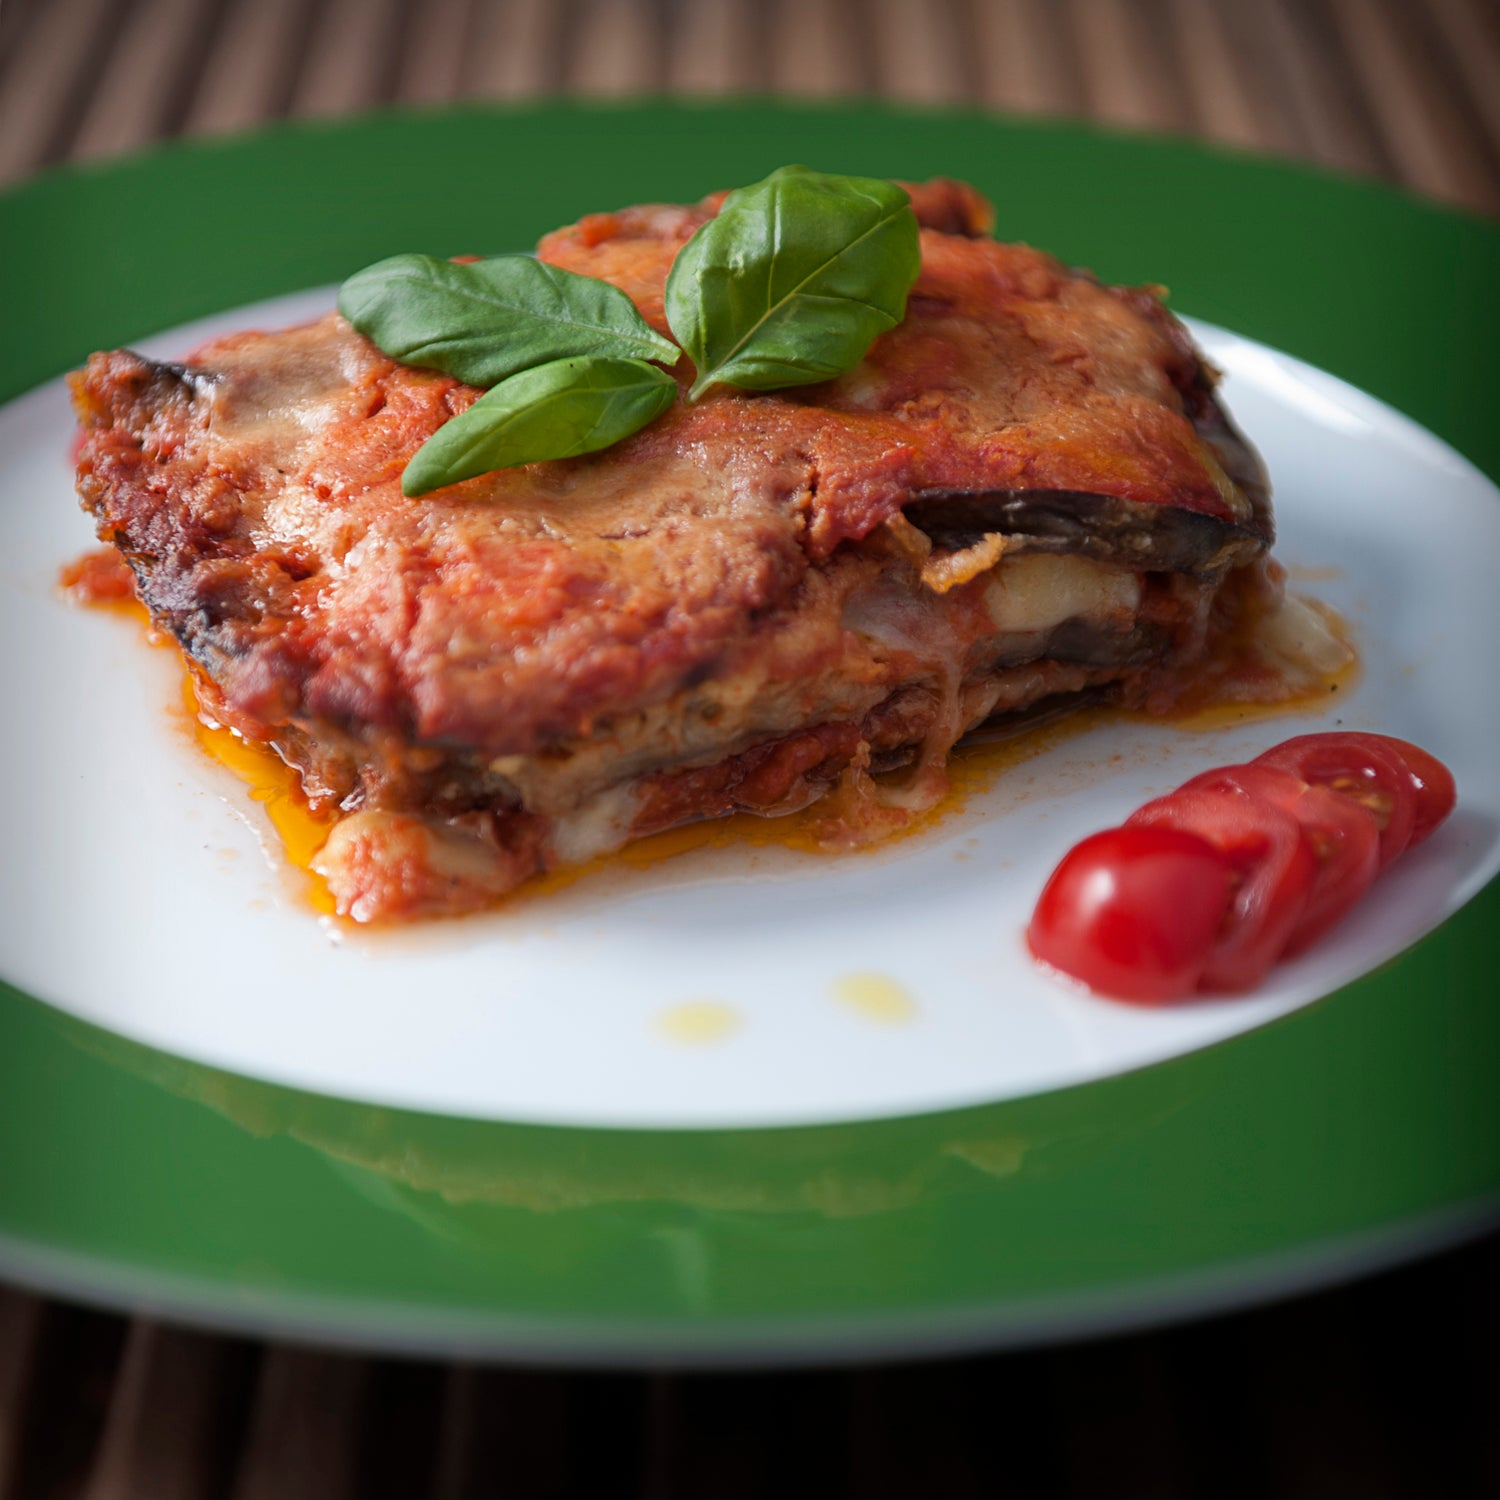 Parmigiana of Aubergine with mozzarella, tomato sauce and Grana Padano